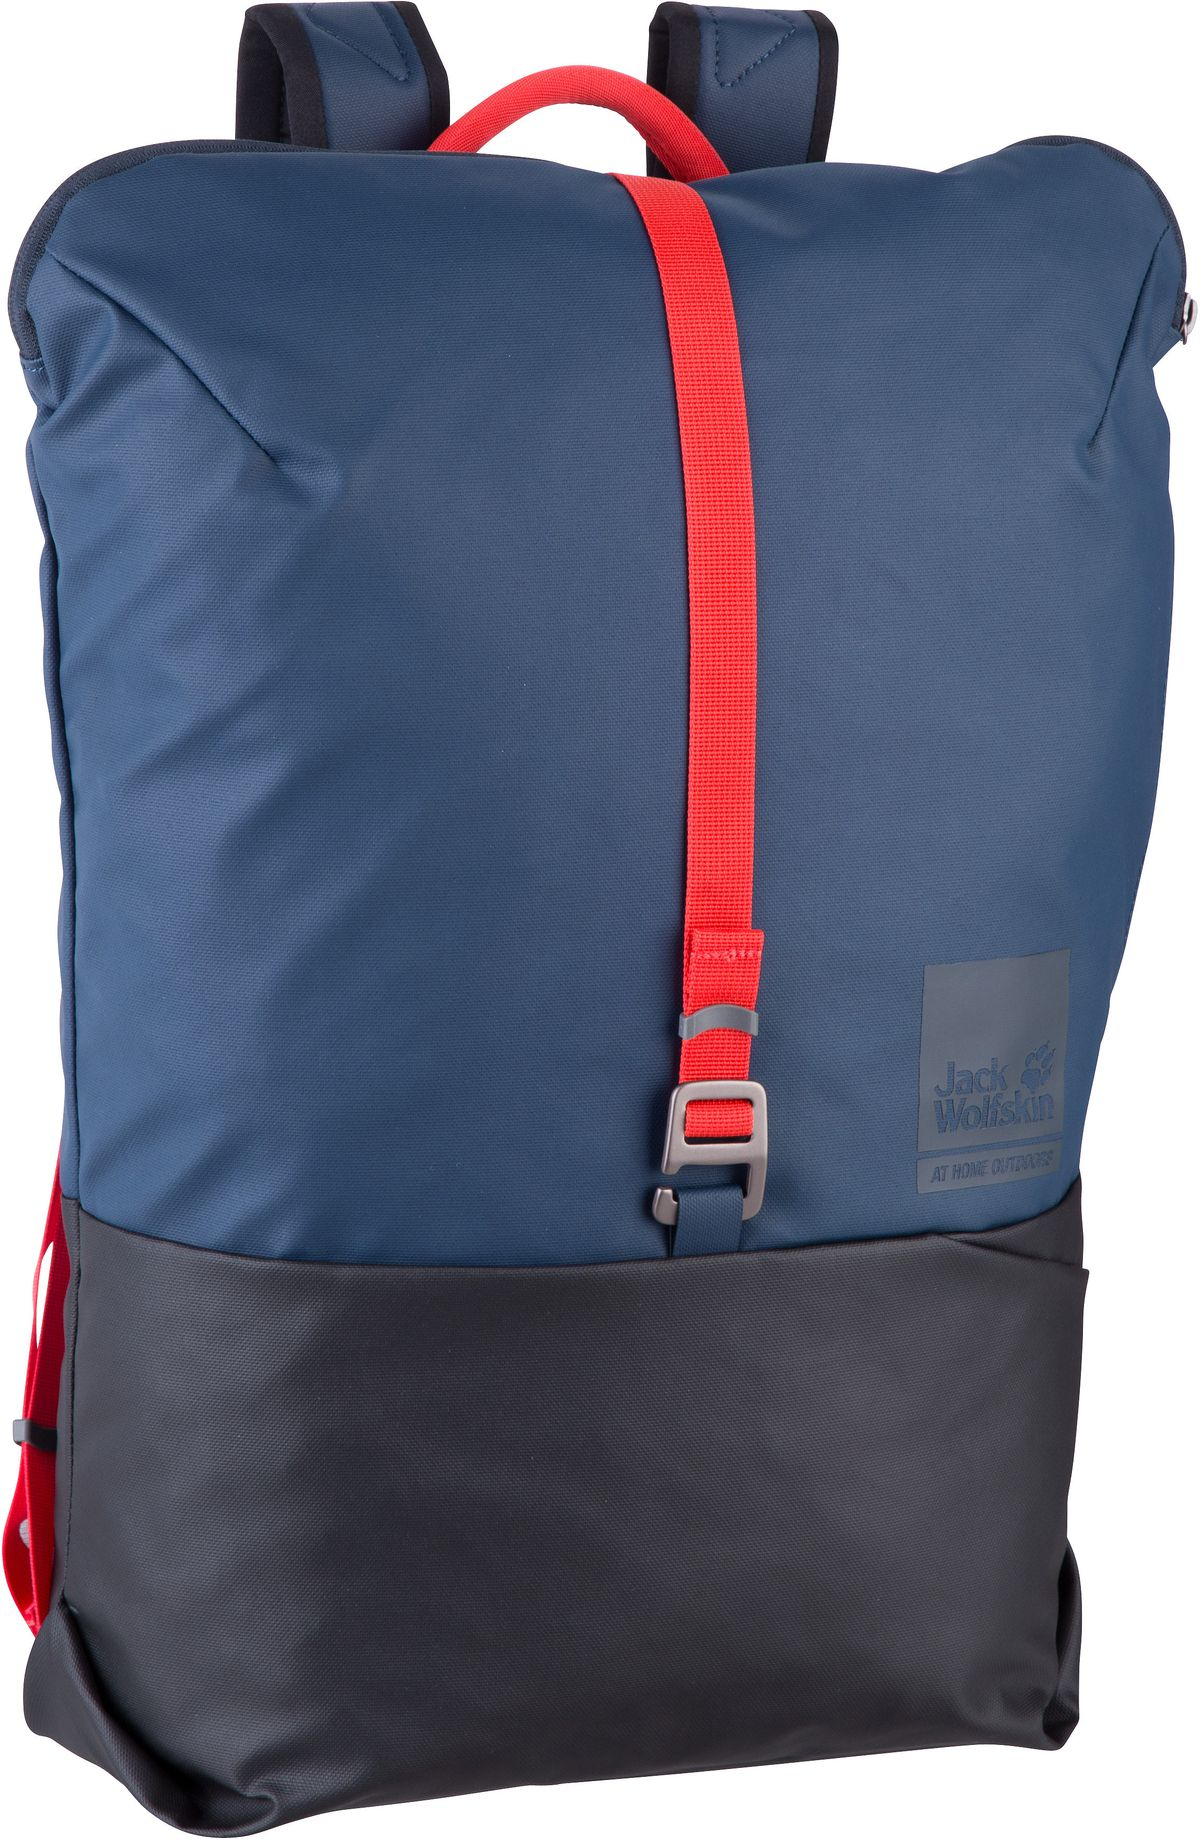 Rucksack / Daypack 365 OnTheMove 24 Pack Night Blue (24 Liter)